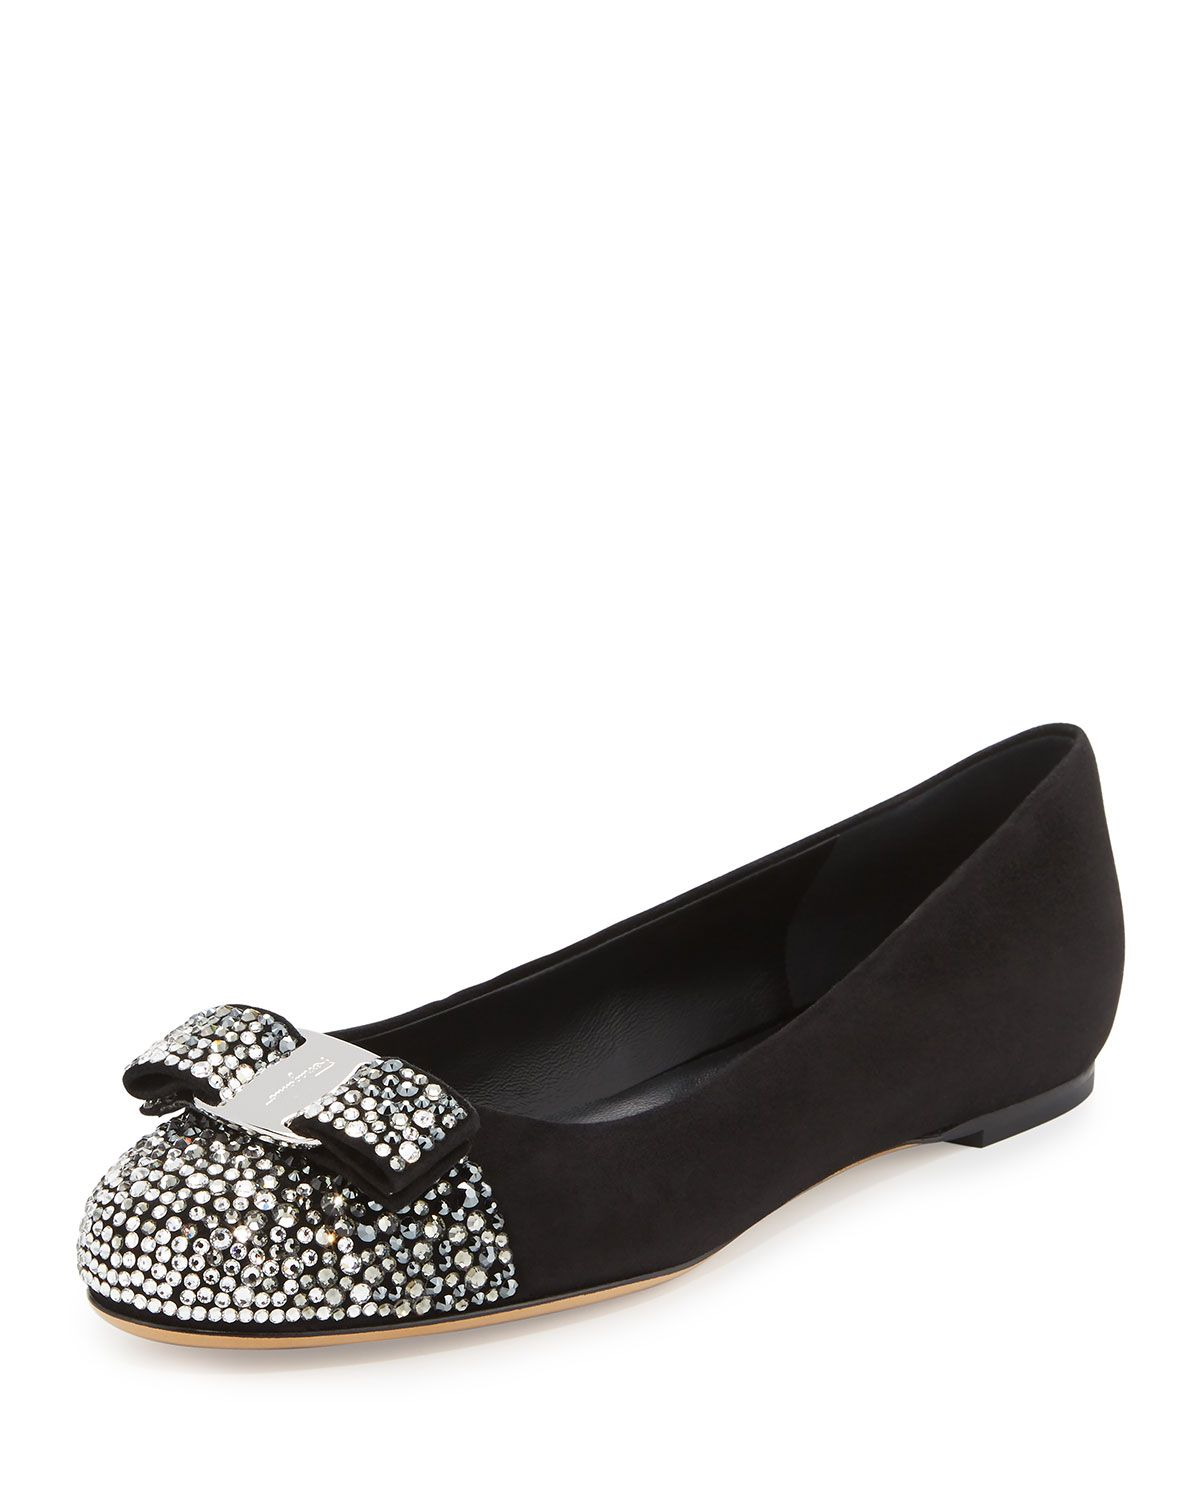 Shop Varina Crystal Suede Bow Ballerina Flat, Nero from Salvatore Ferragamo  at Neiman Marcus Last Call, where you'll save as much as on designer  fashions.